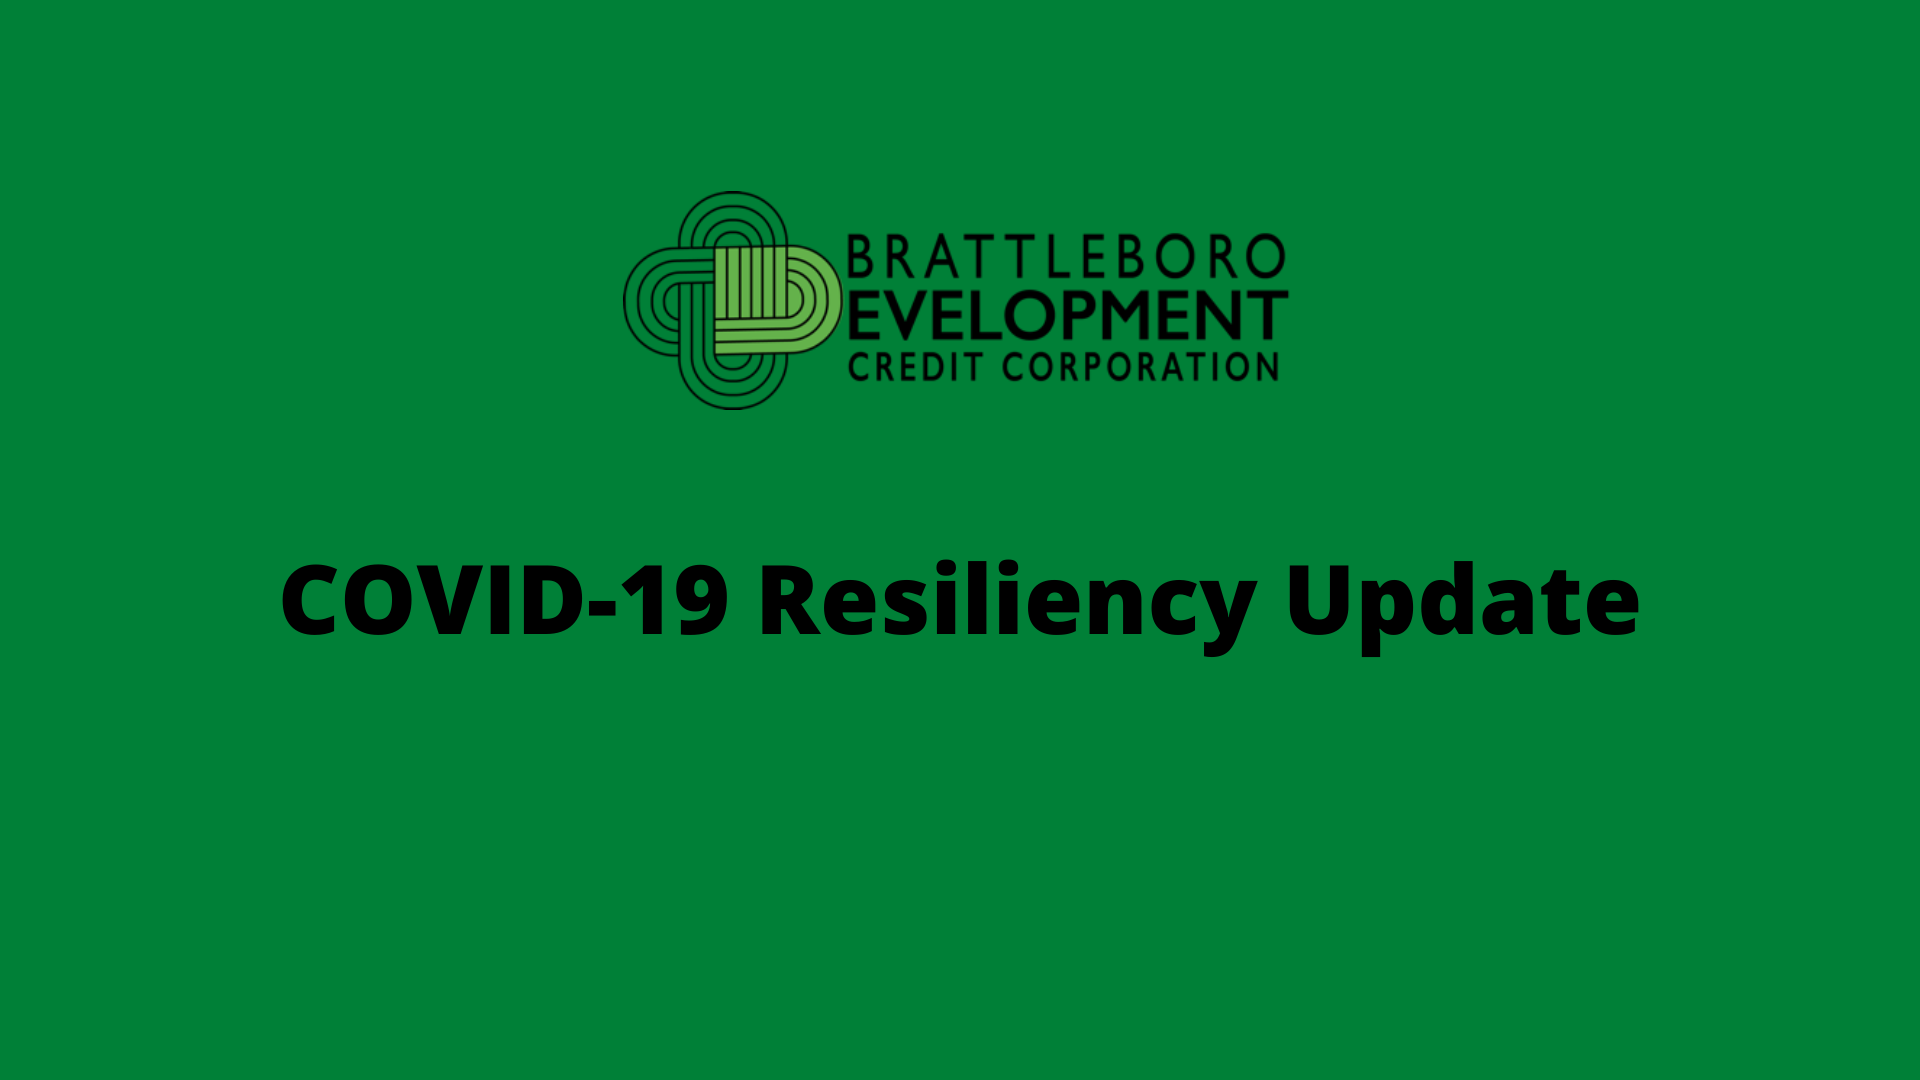 COVID-19 Resiliency Update 4/13/20